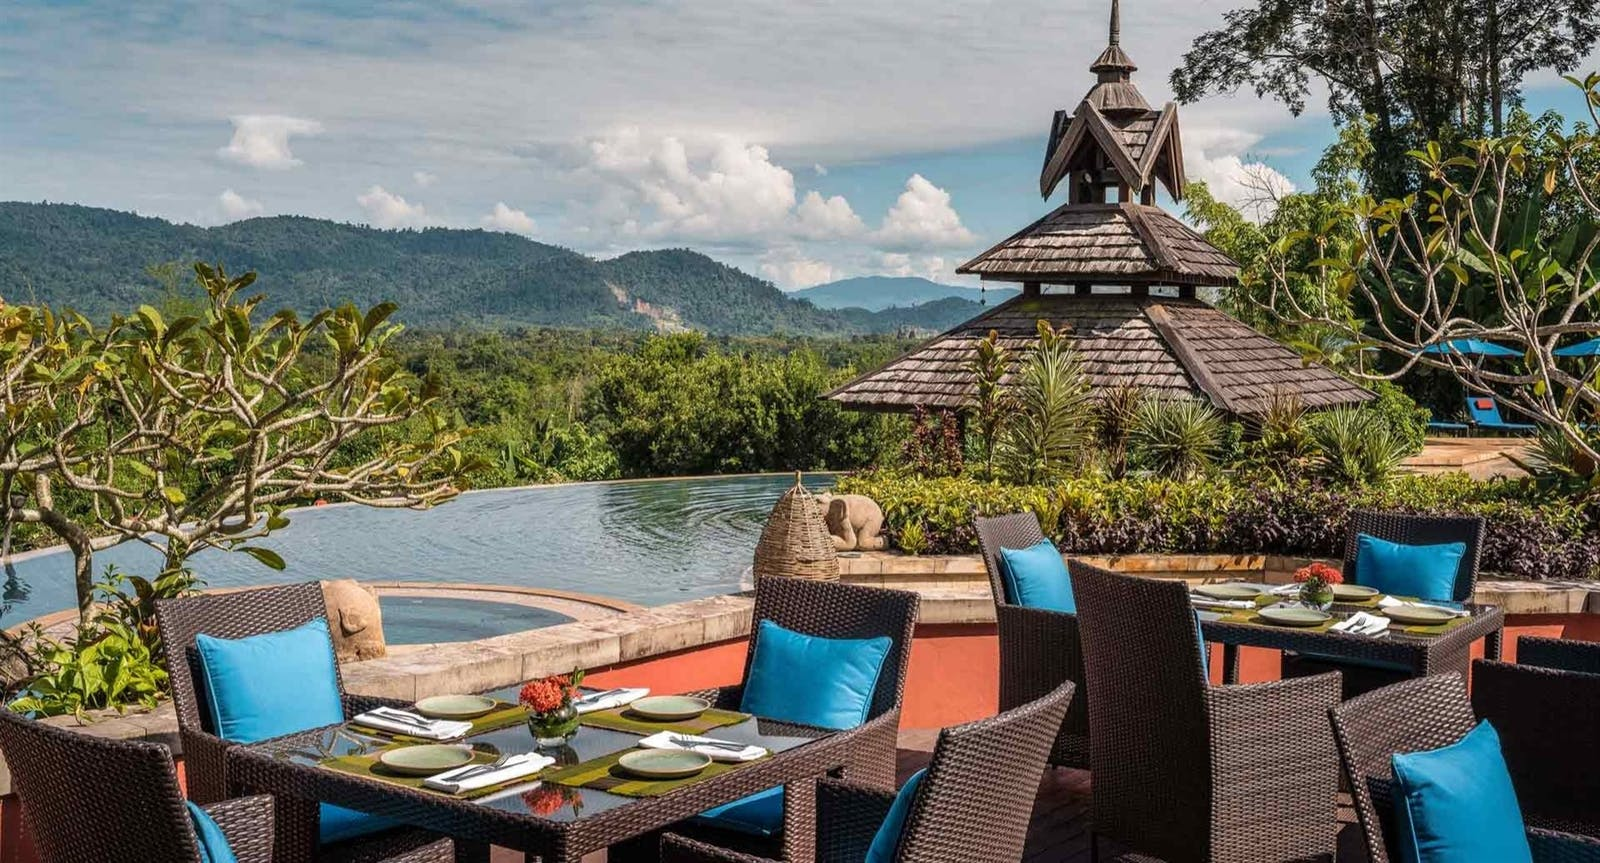 Pool side dining at Anantara Golden Triangle Elephant Camp Resort, Chiang Rai, Thailand, Asia